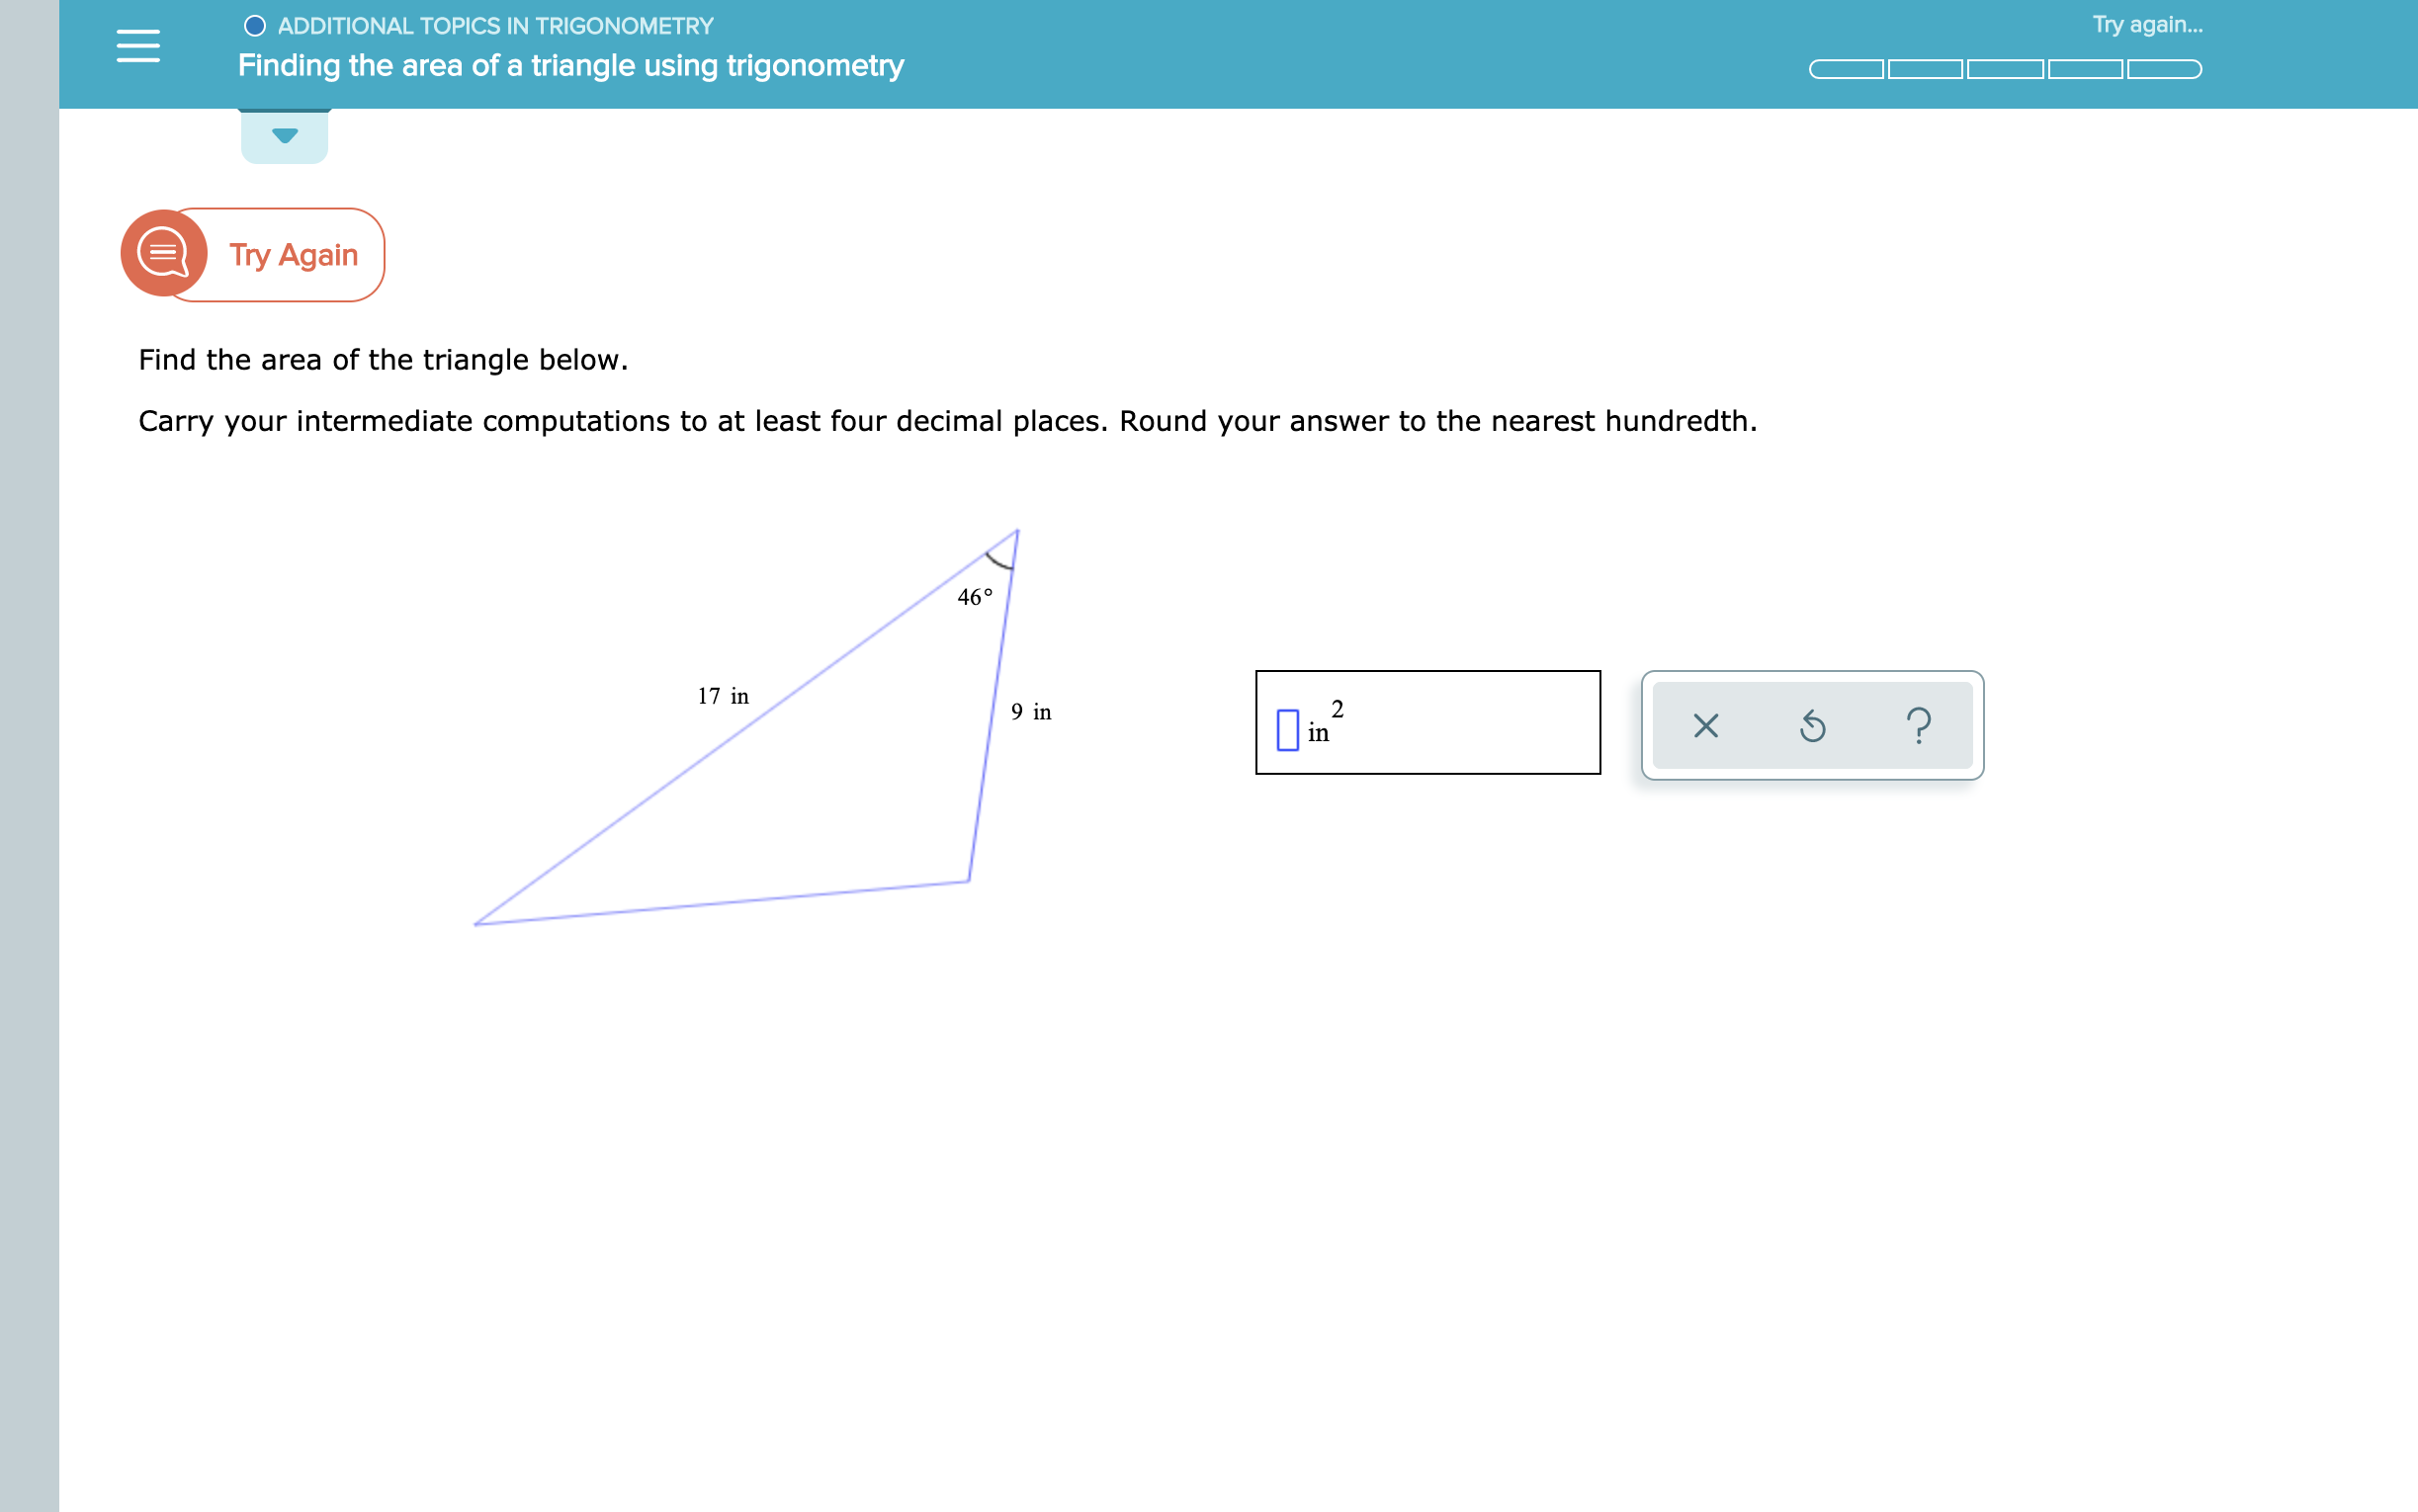 O ADDITIONAL TOPICS IN TRIGONOMETRY Try again... Finding the area of a triangle using trigonometry Try Again Find the area of the triangle below. Carry your intermediate computations to at least four decimal places. Round your answer to the nearest hundredth. 46° 17 in 2 in 9 in ?